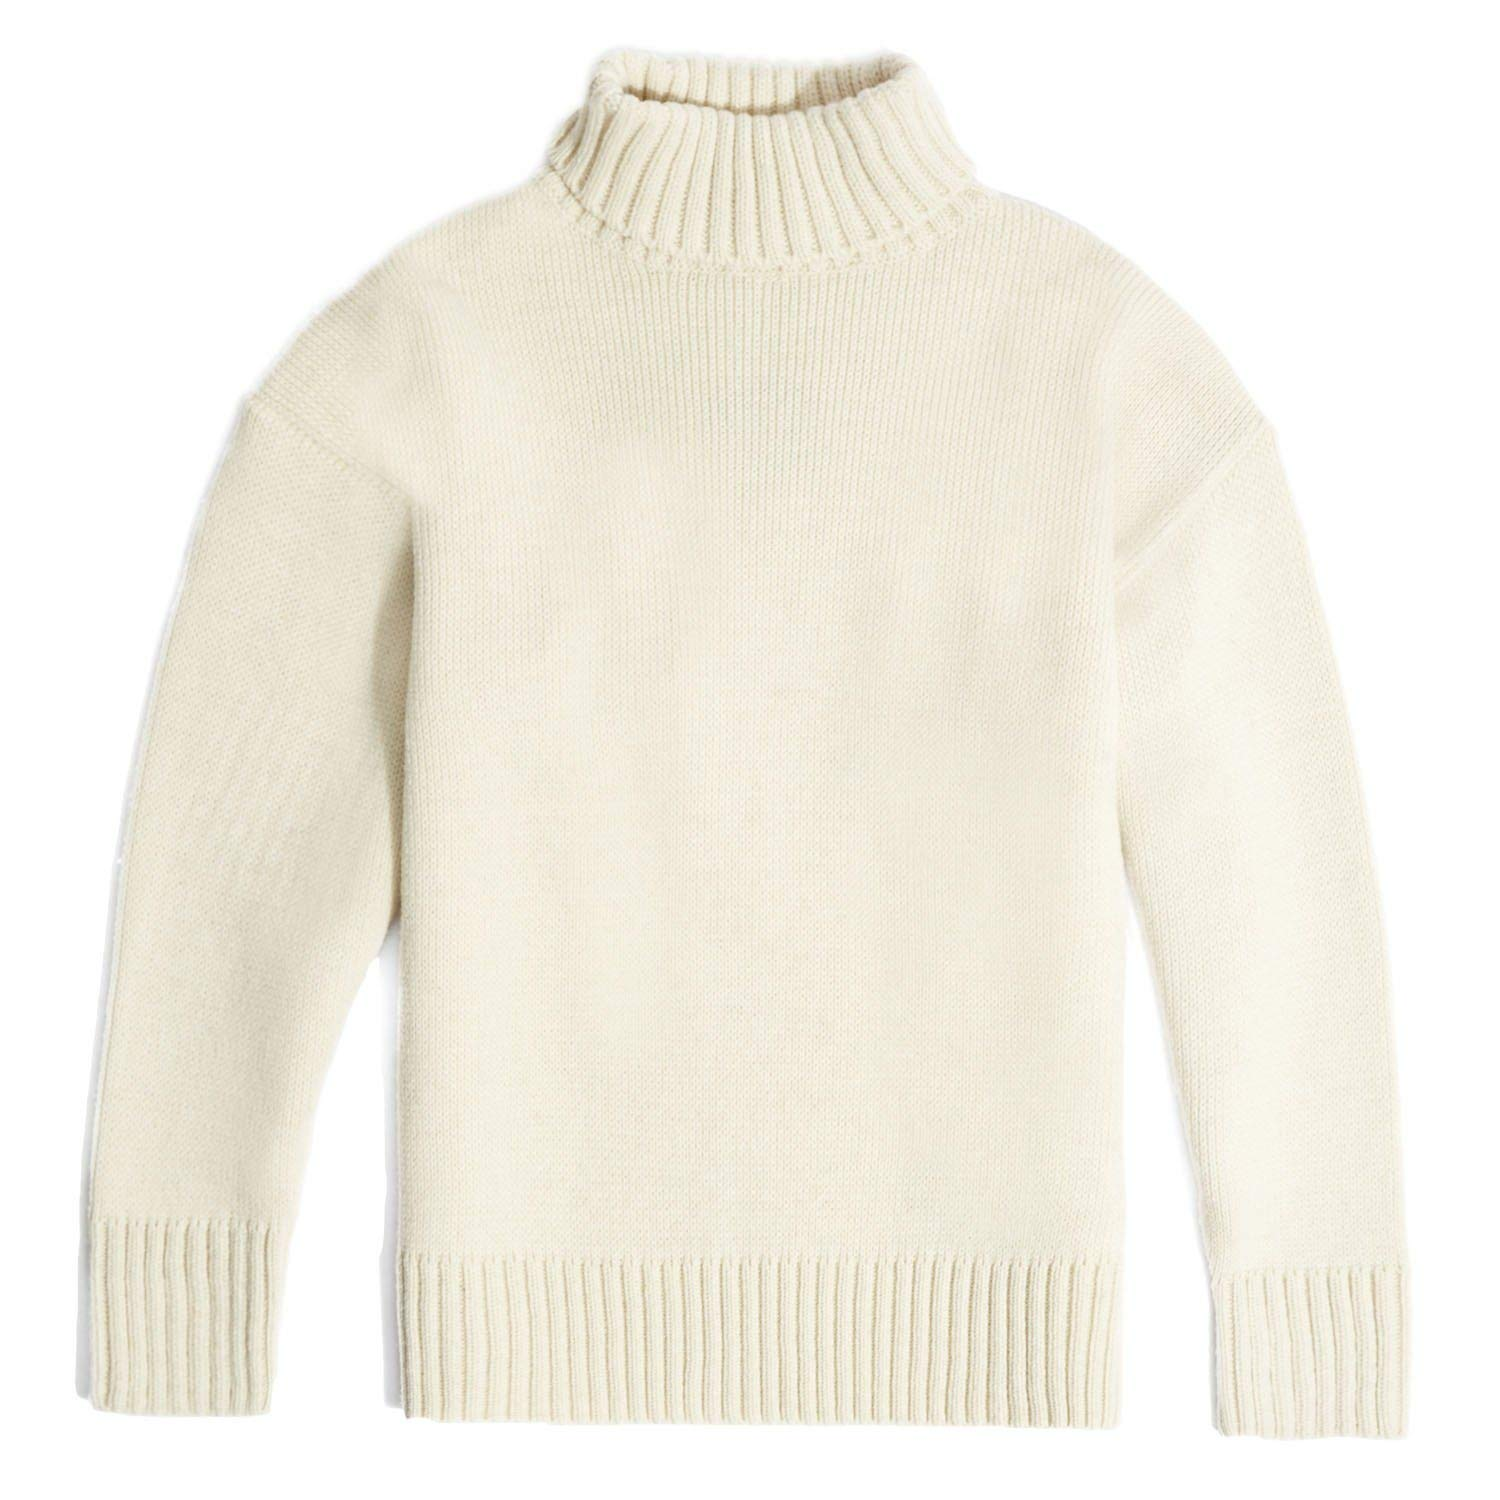 f7dbeffed8a5c Amazon.com  Paul James Knitwear Mens Submariner 100% Merino Wool Roll Neck  Jumper  Clothing